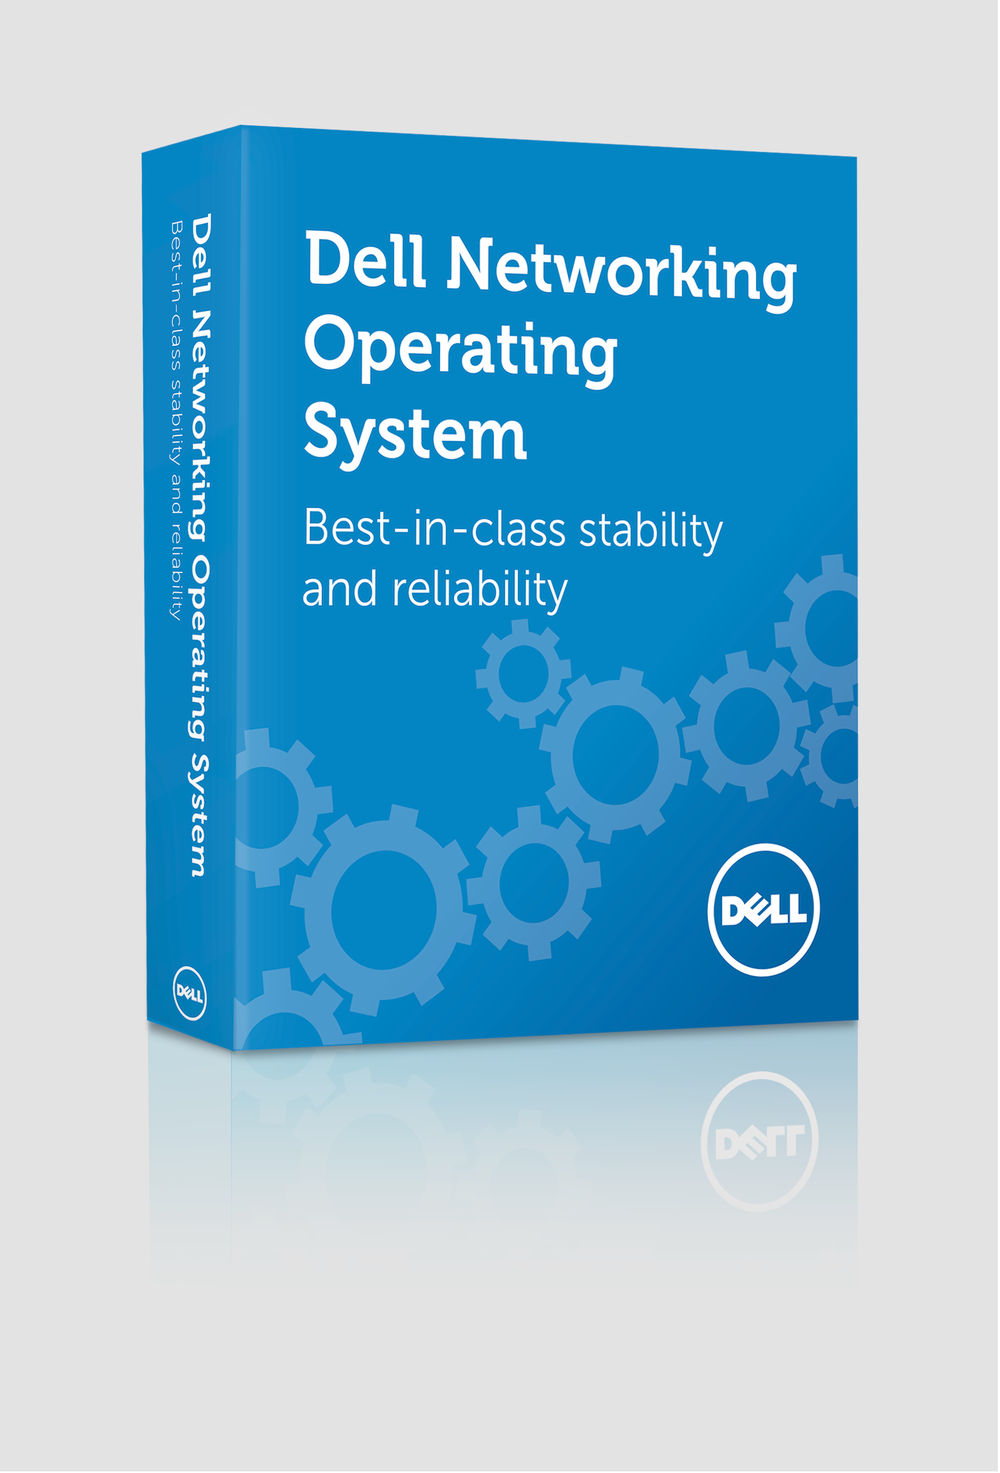 New-artwork_Dell-Networking-Operating-System-software-box-image_v1.png